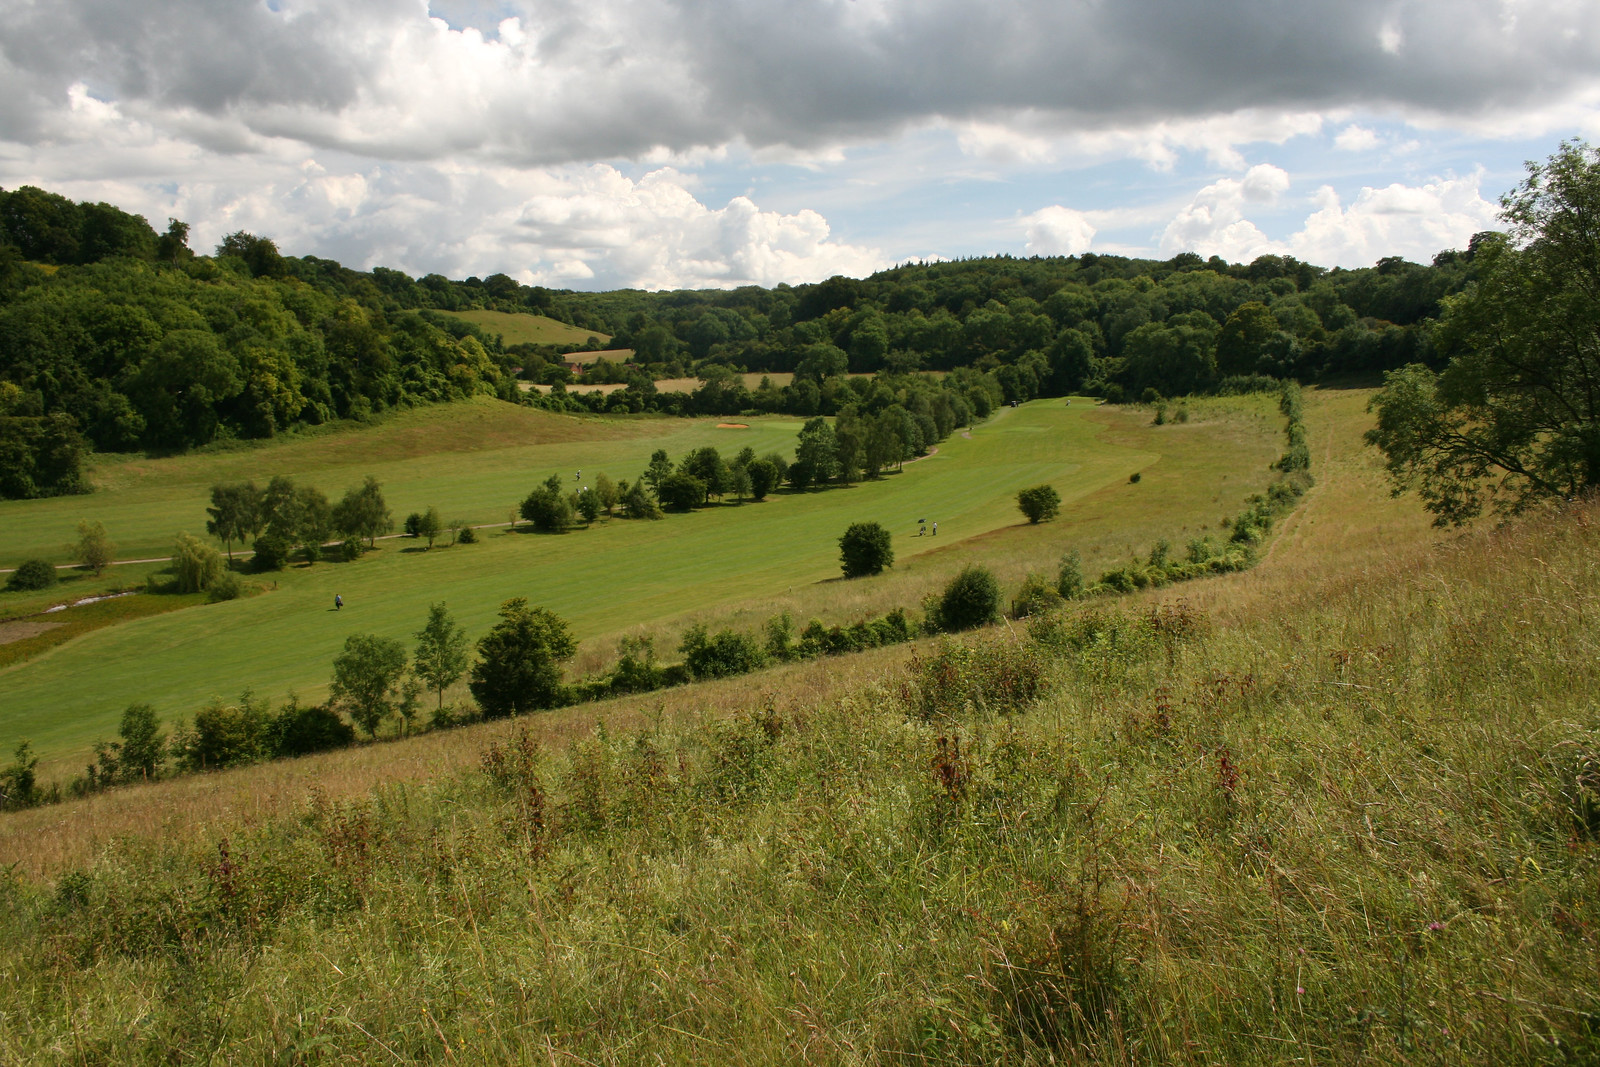 Valley near Shoreham